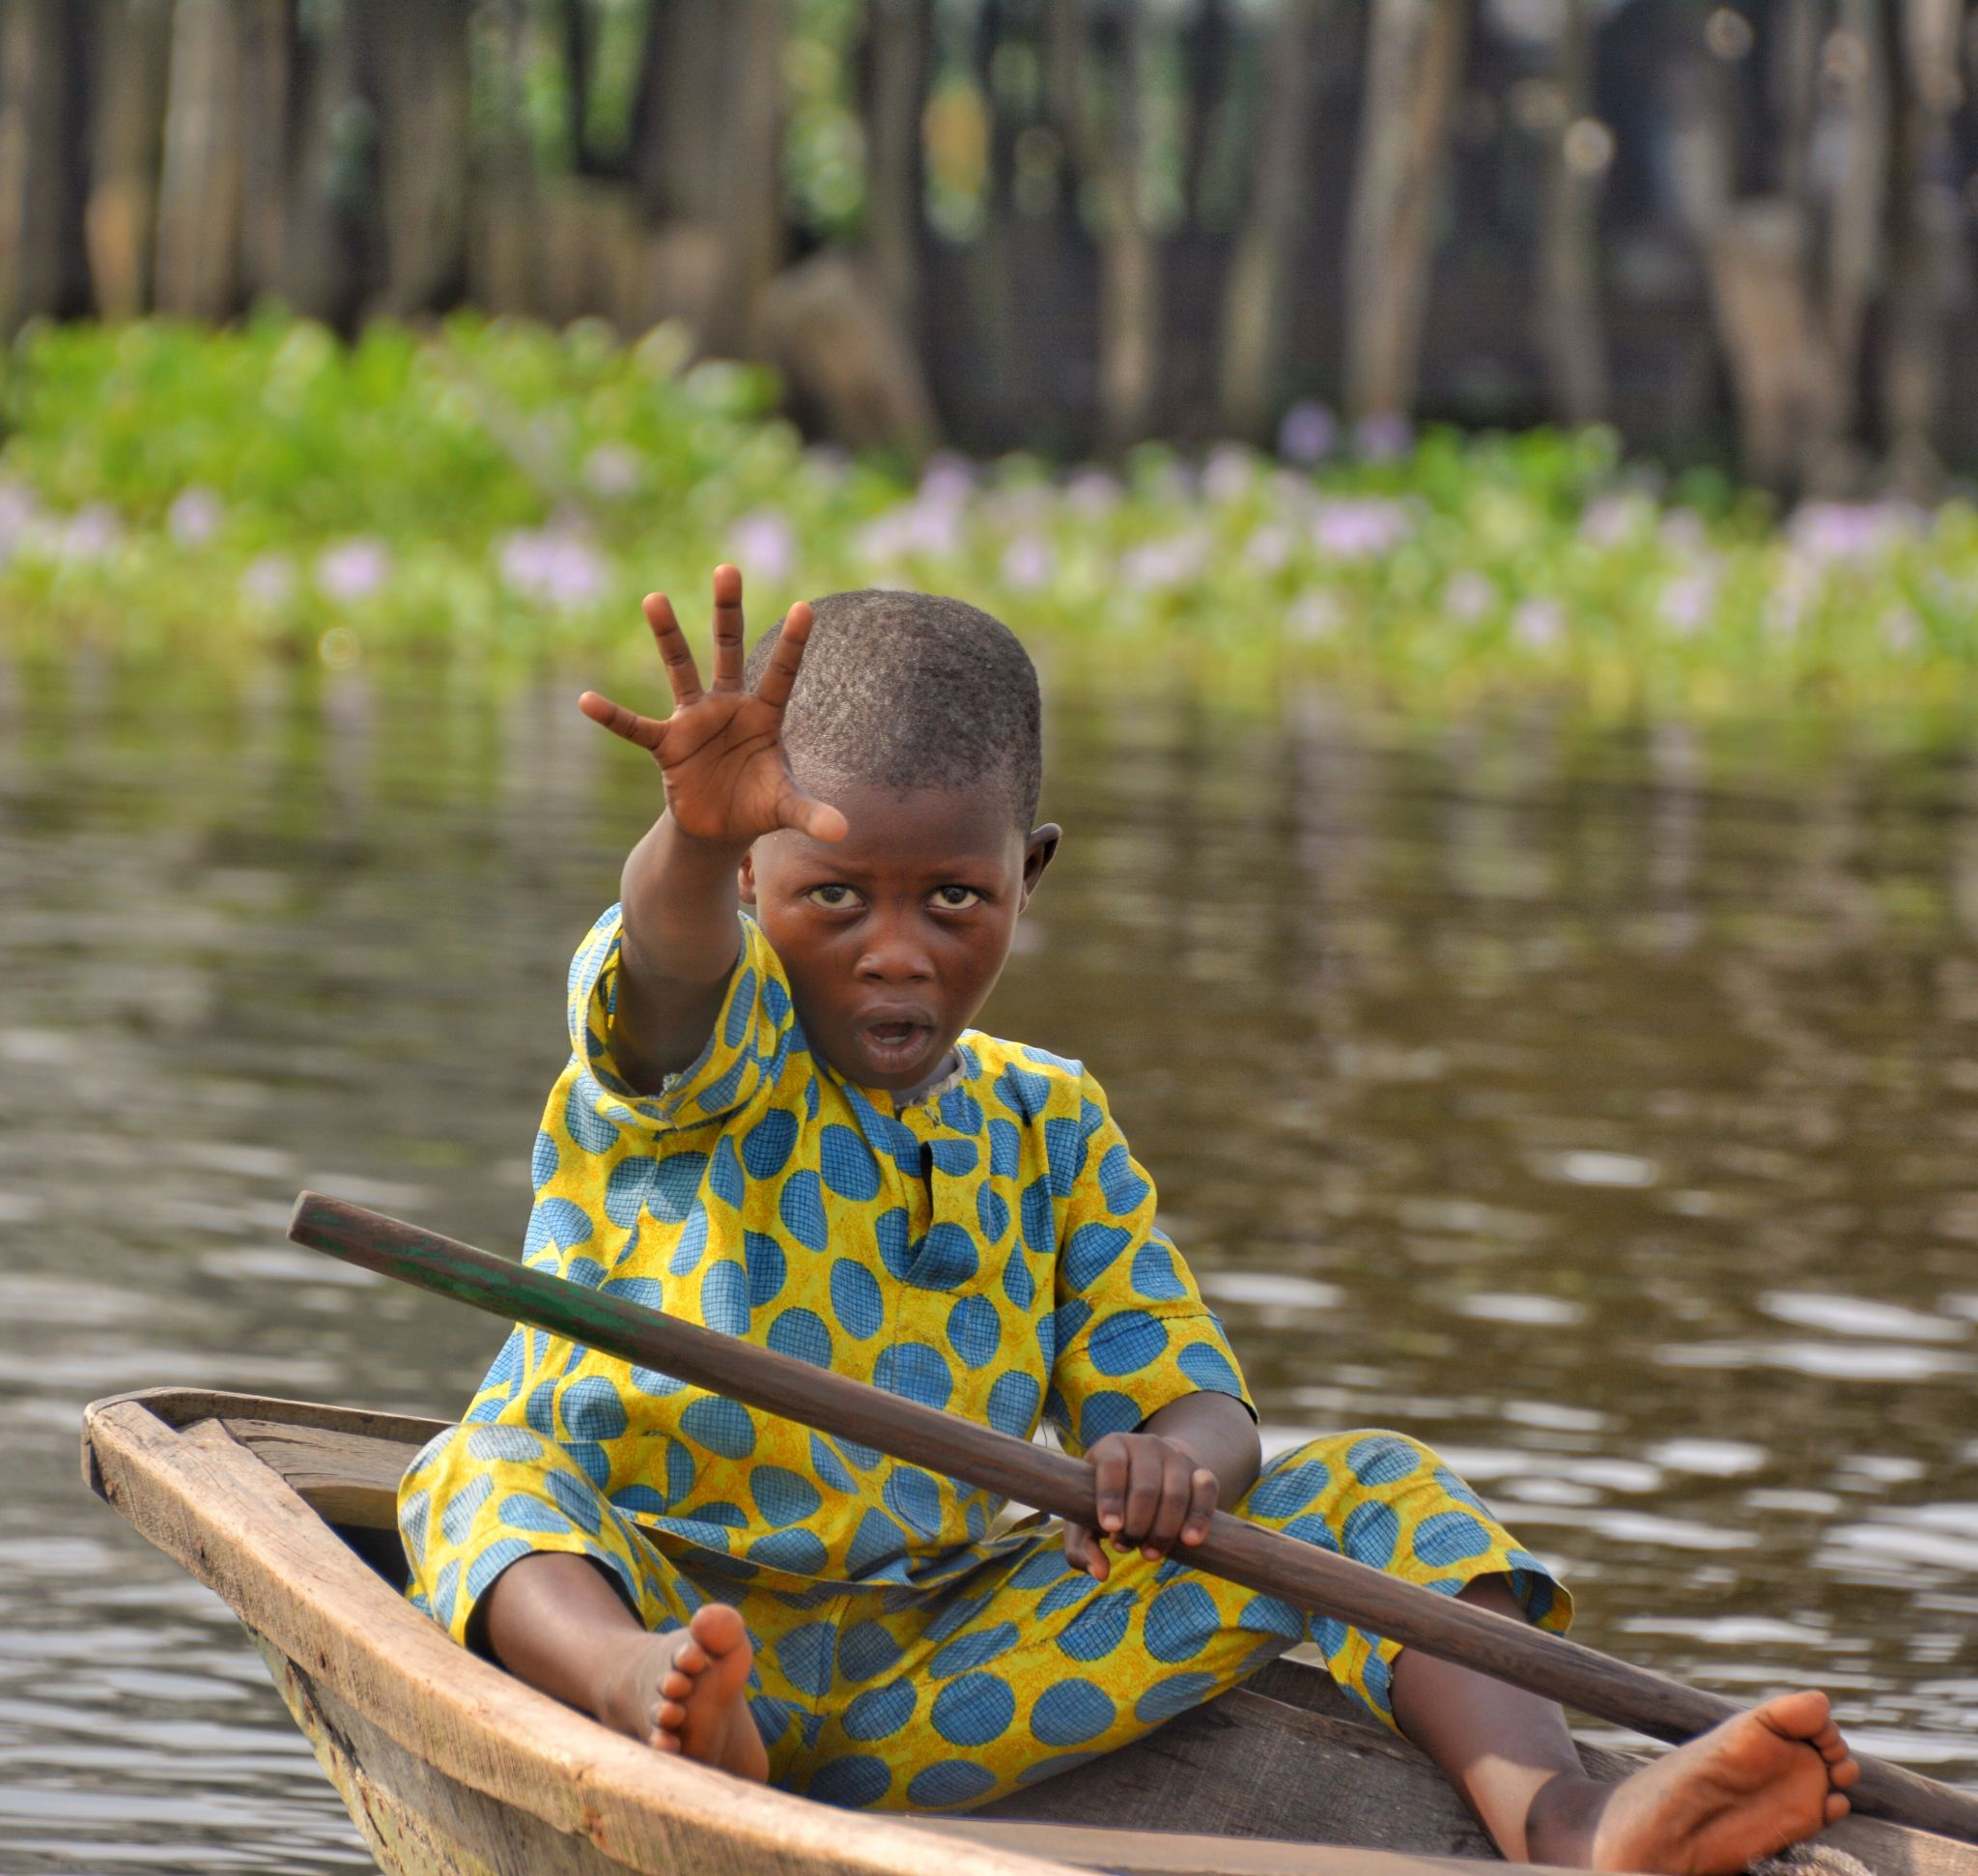 Youngster, Ganvie Stilt Village, Lake Nokoue, Benin